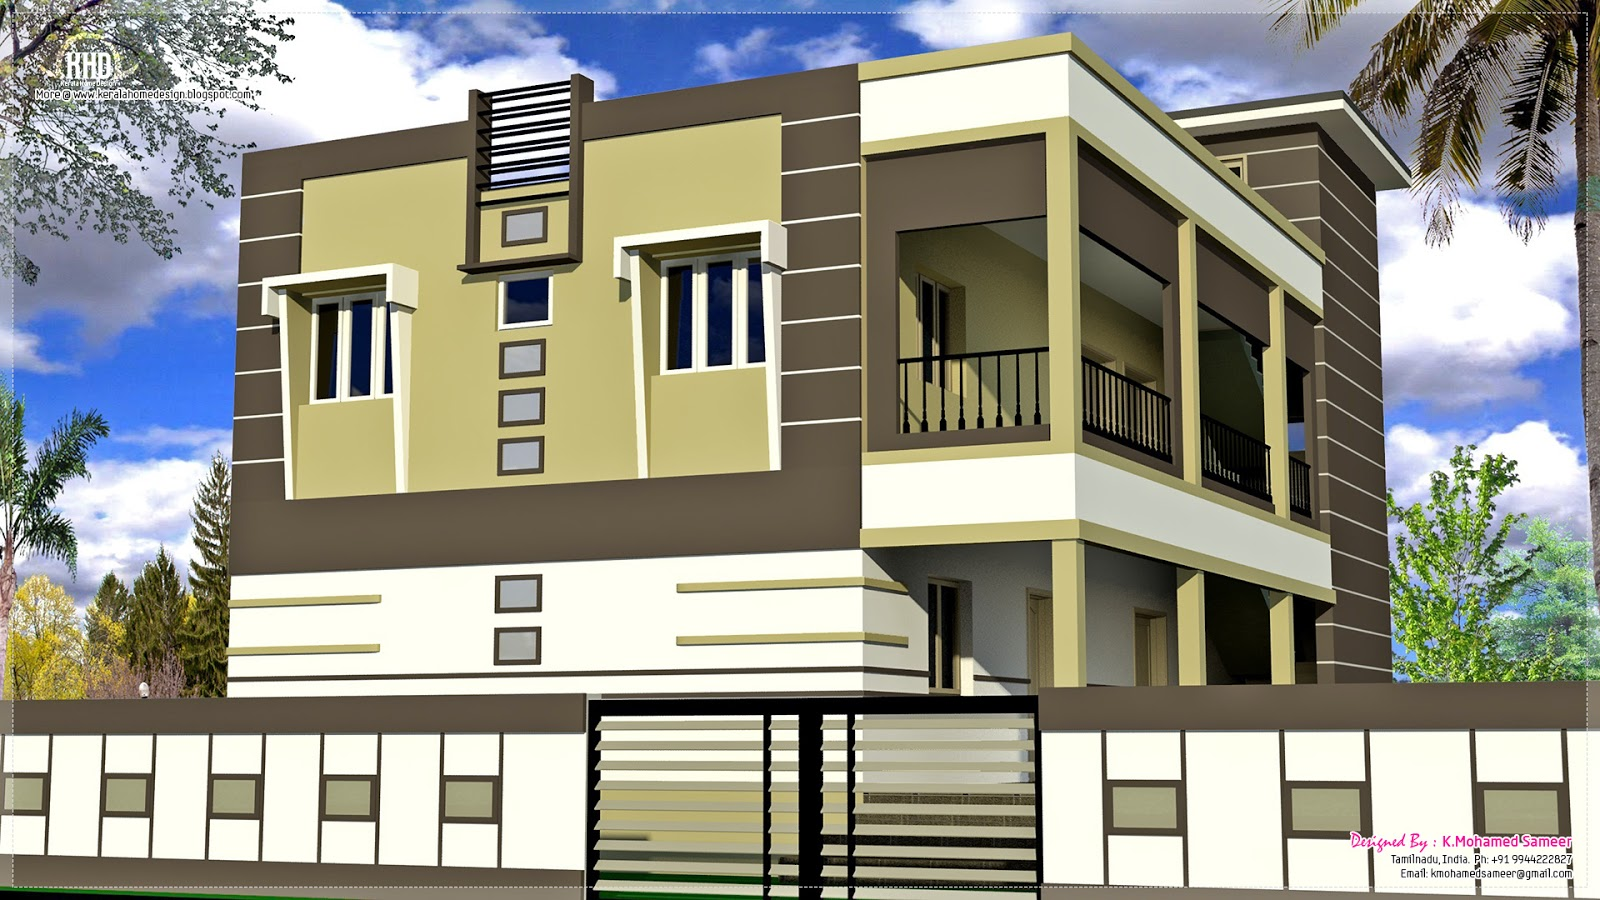 Groovy 2 South Indian House Exterior Designs Kerala Home Design And Largest Home Design Picture Inspirations Pitcheantrous